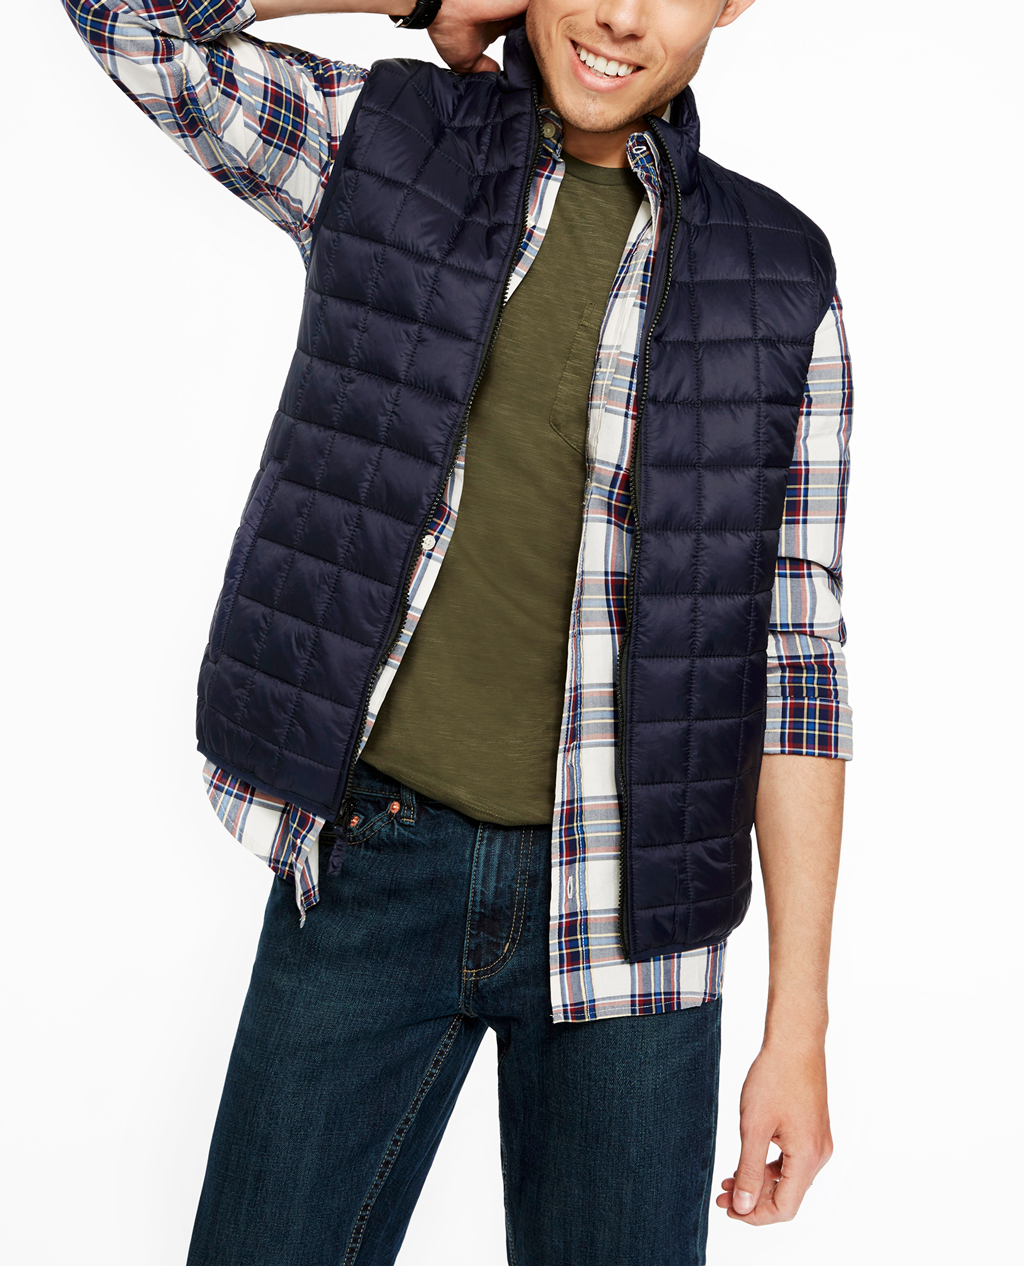 Joe Fresh New Collection Inspired by Nick